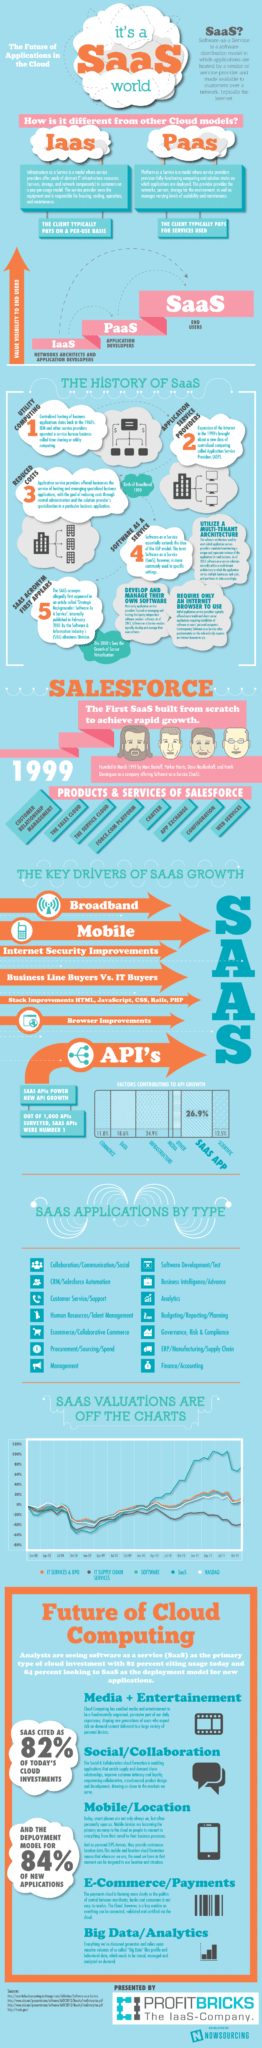 SaaS as the Primary Cloud Investment [Infographic] 1